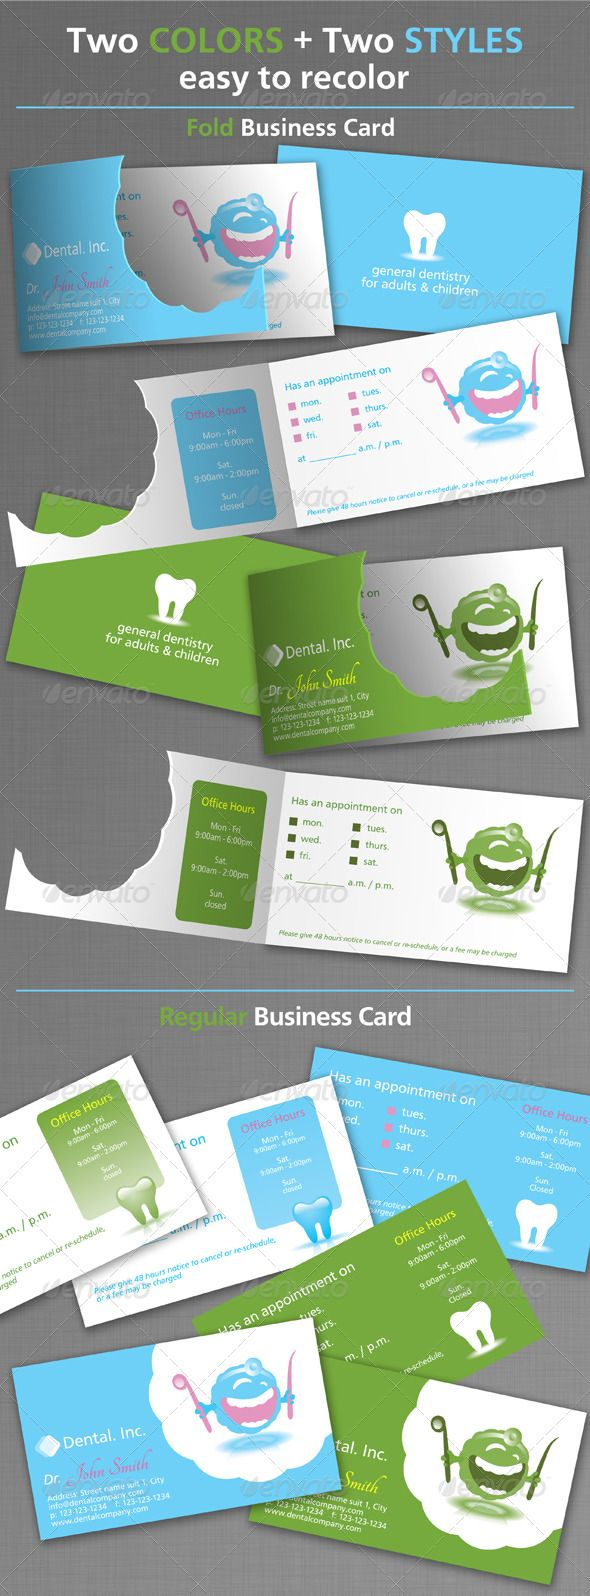 Dental Business Cards — Vector EPS #dental equipment #dental hygienist • Available here → https://graphicriver.net/item/dental-business-cards/233561?ref=pxcr